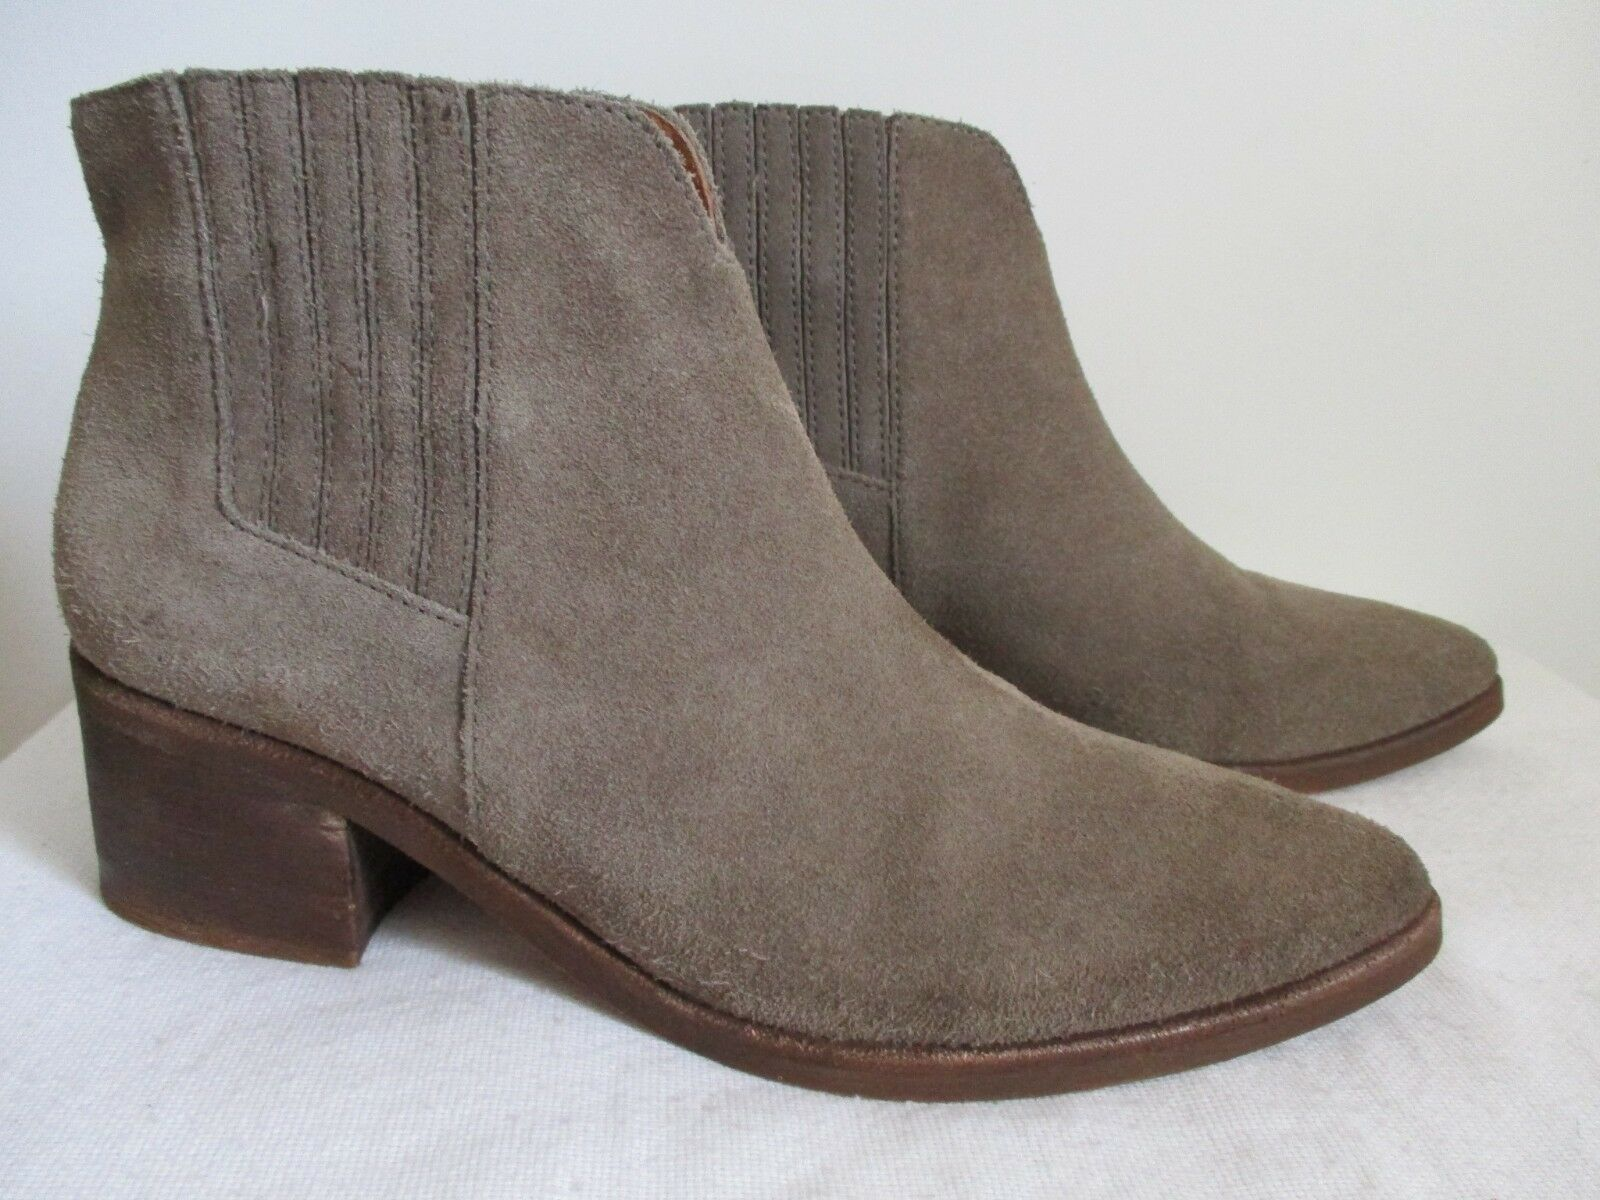 Madewell Suede Damenschuhe Pull On Taupe Ankle Stiefel Größe 10 US